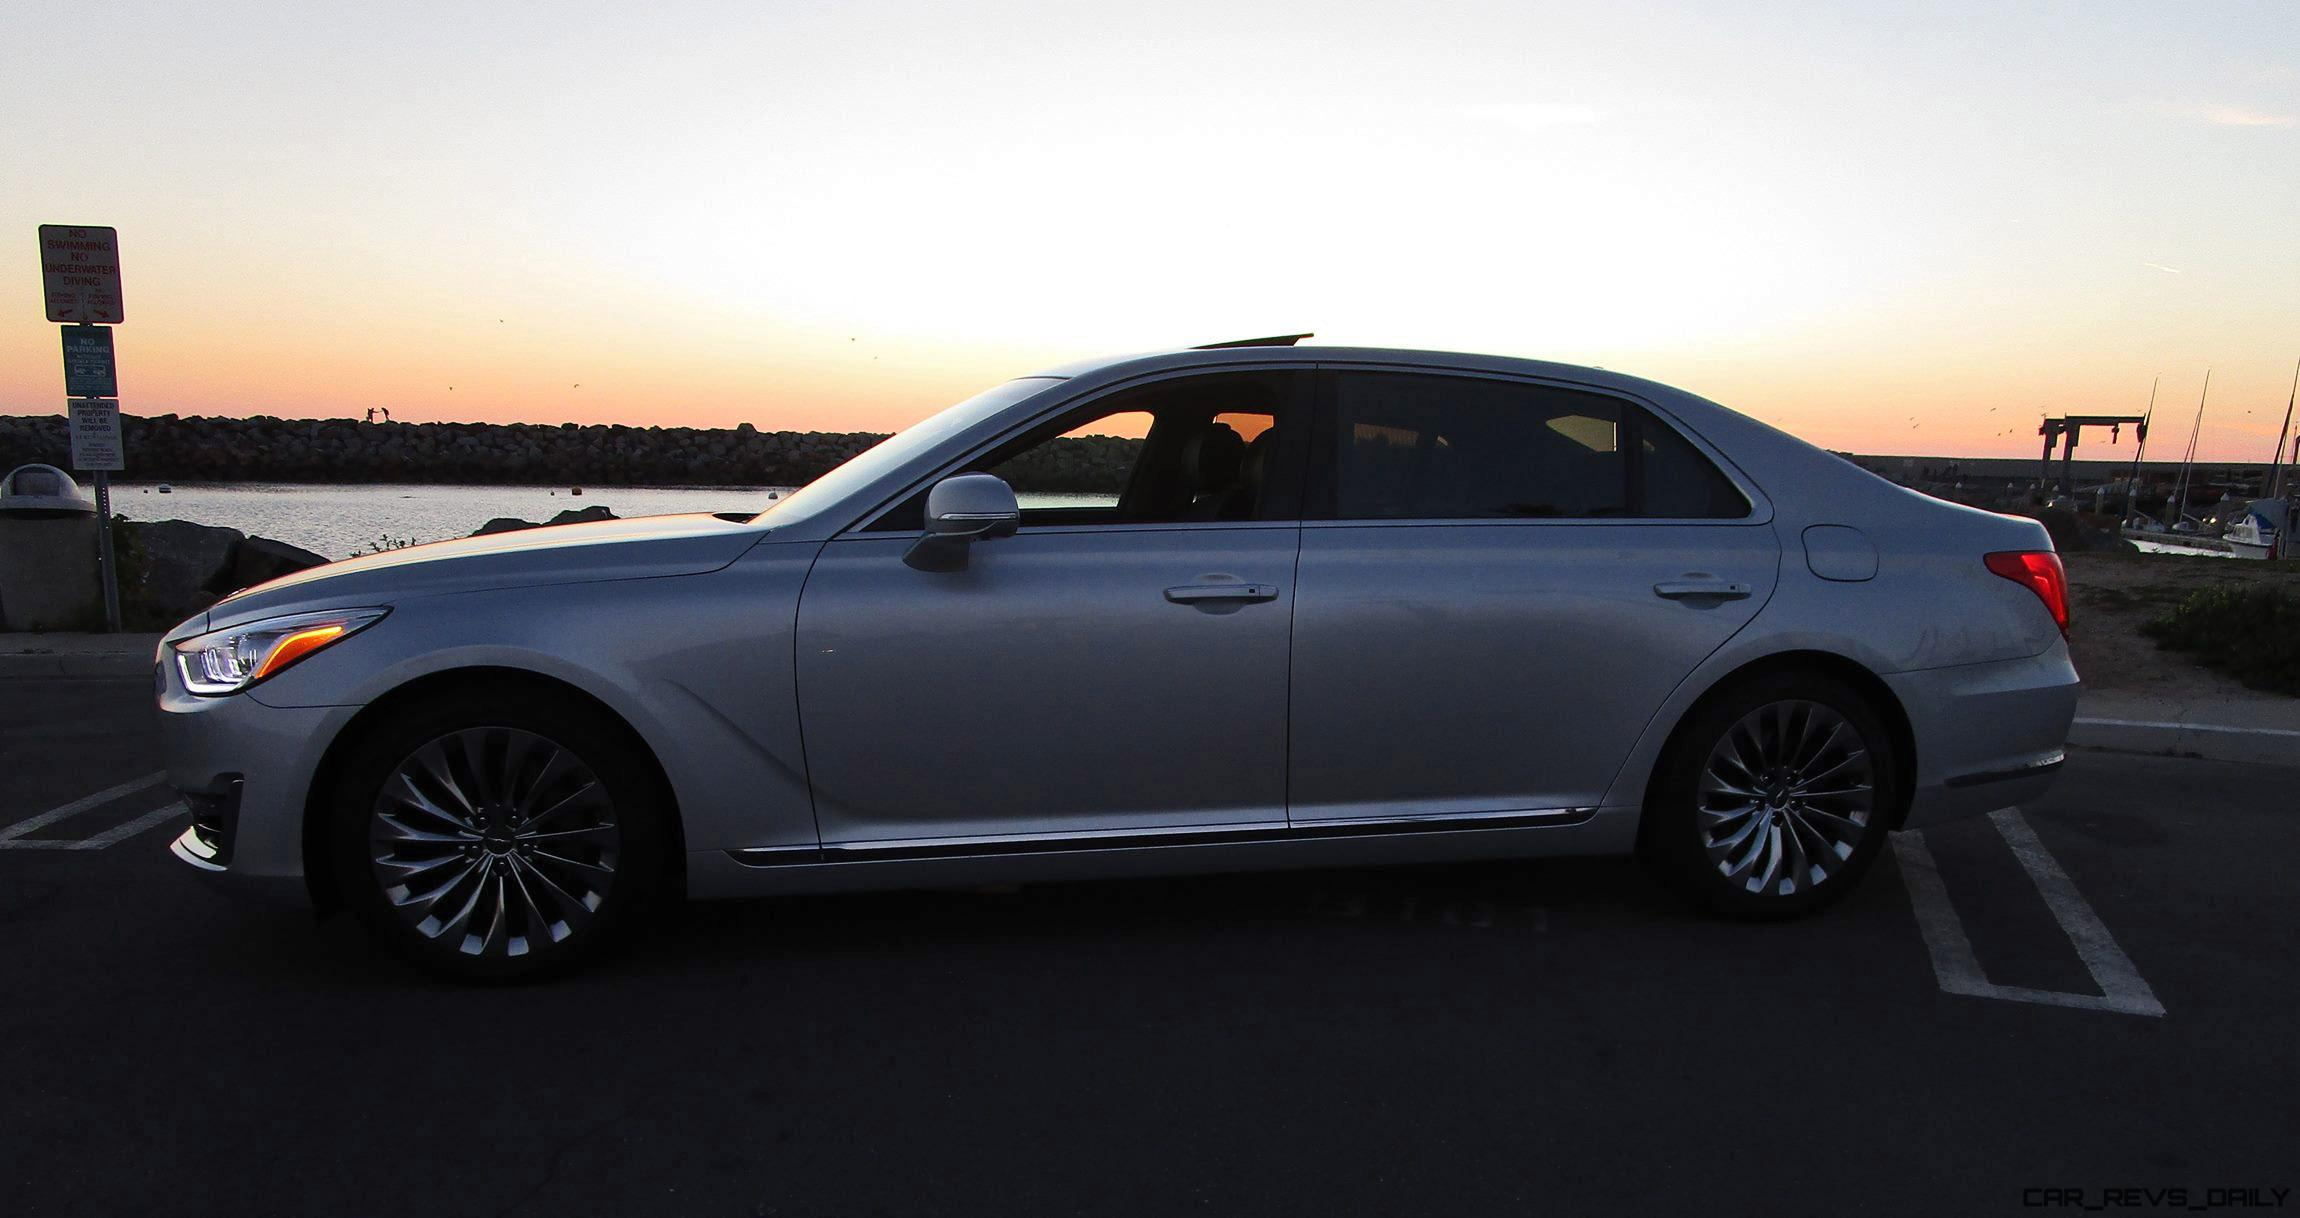 2017 genesis g90 5 0 ultimate rwd road test review by. Black Bedroom Furniture Sets. Home Design Ideas